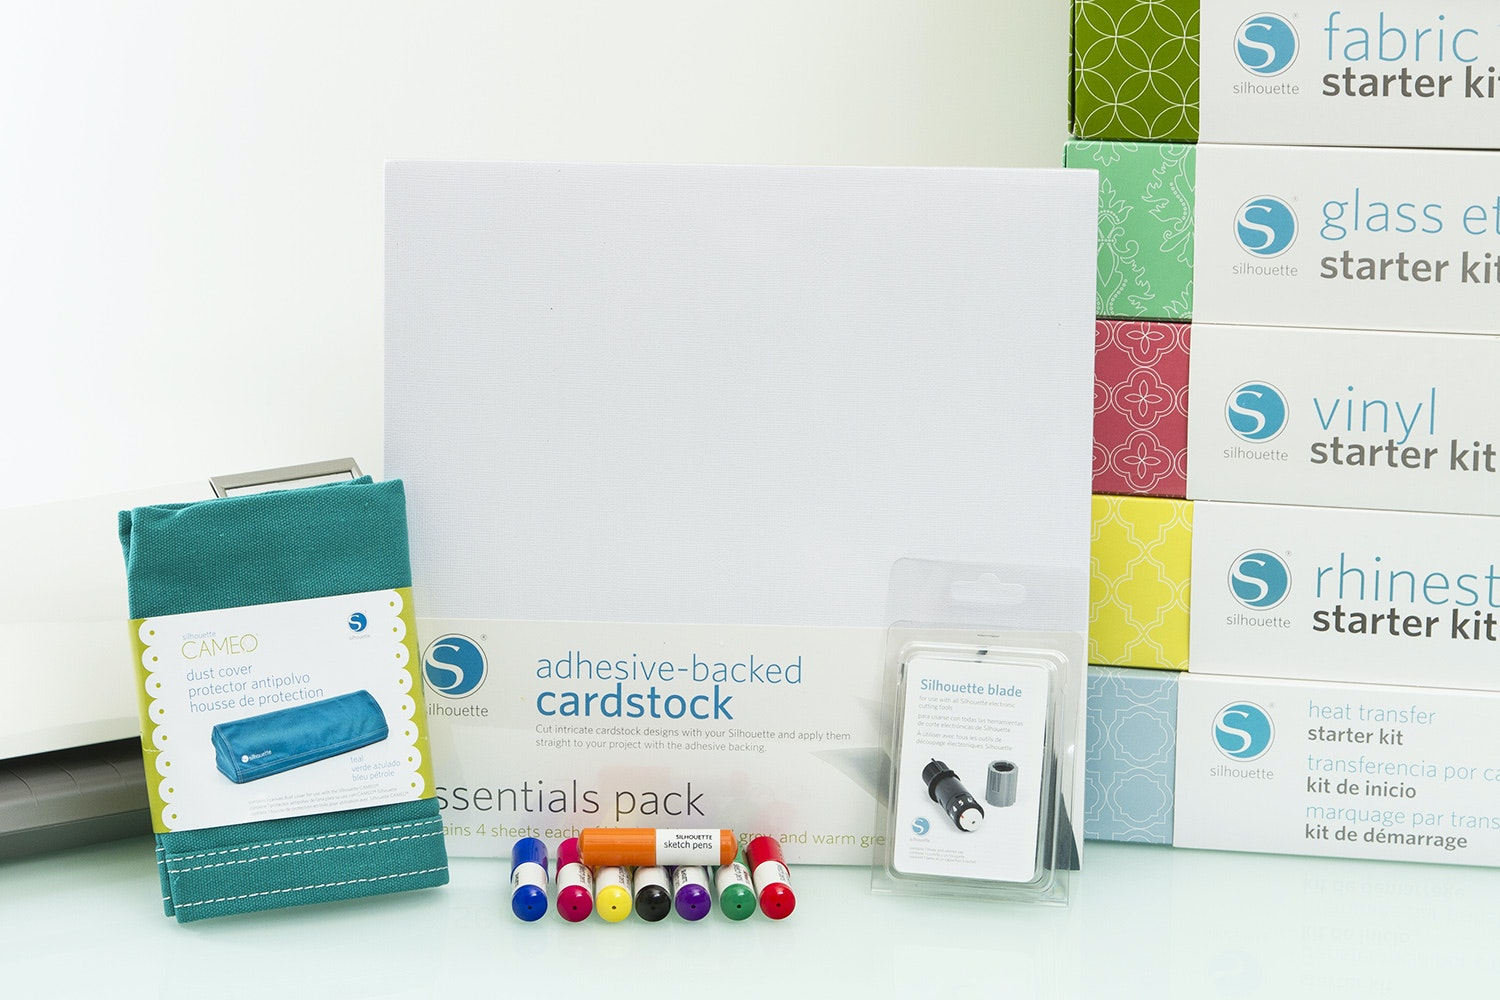 Cameo Accessories Kit